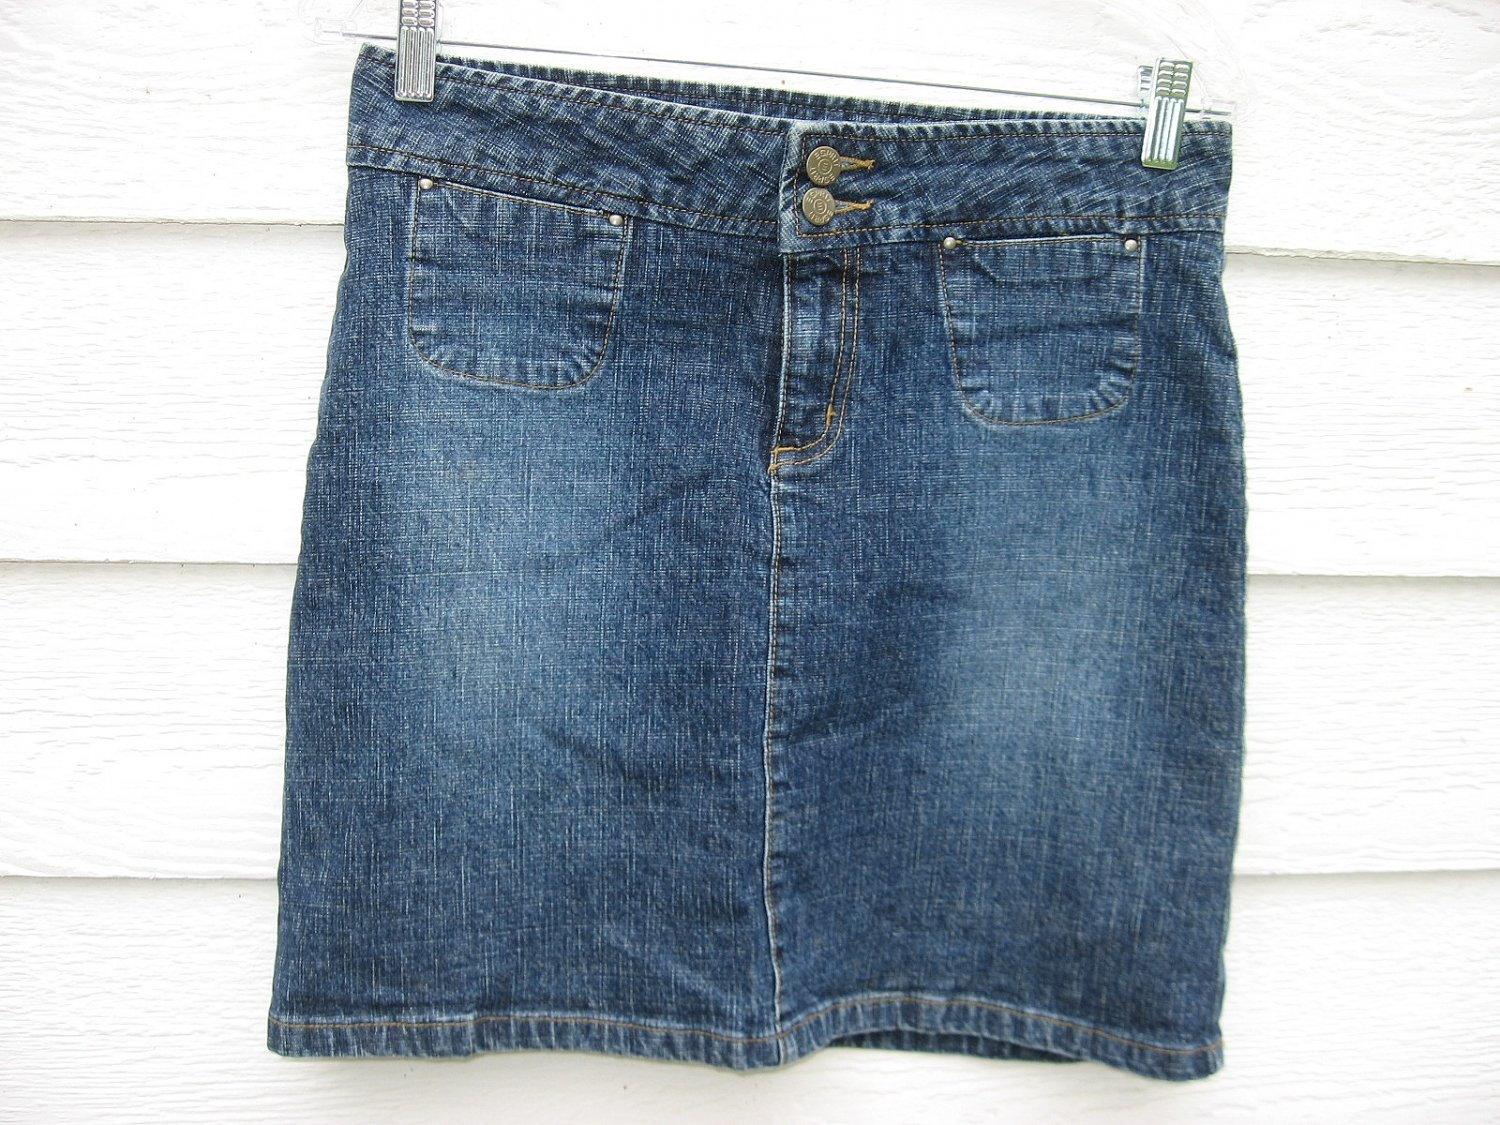 Esprit Denim Skirt 5/6 31 Waist Blue Jean Mini